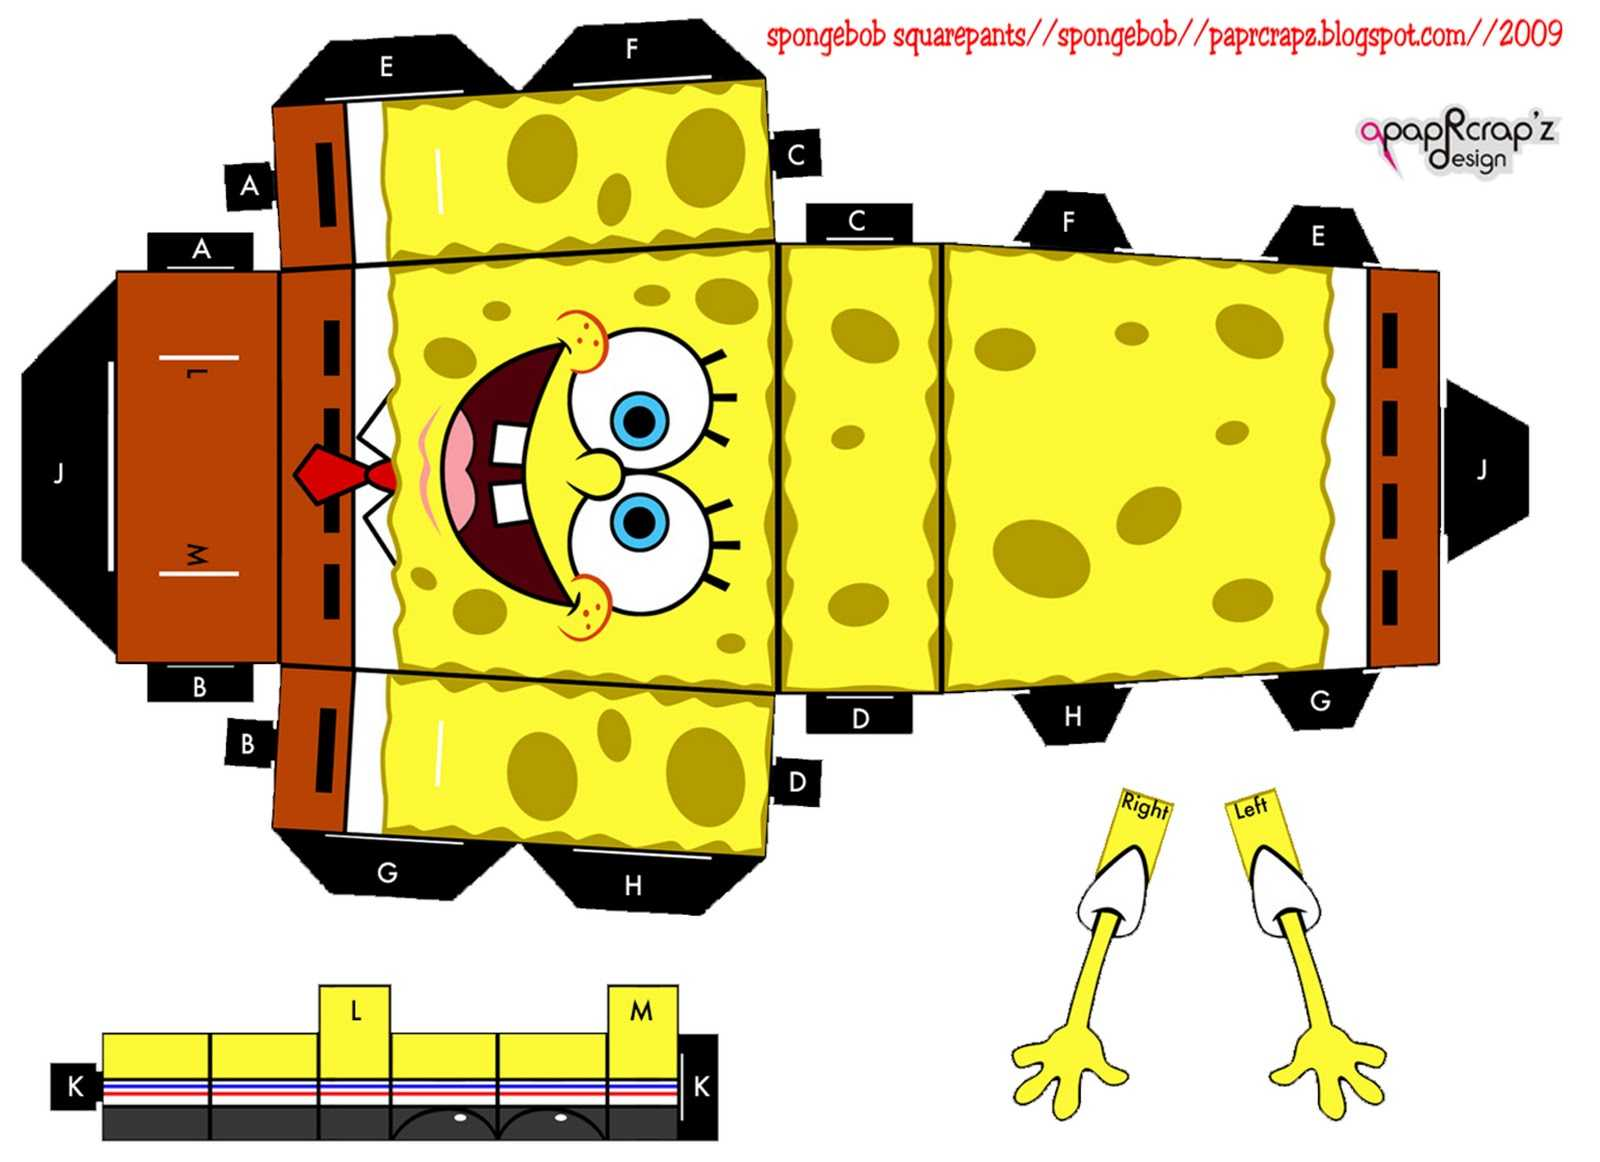 spongebob squarepants the paper Use this in combination with the arms & legs from my other spongebob cubee ([link]) for a more realistic result.